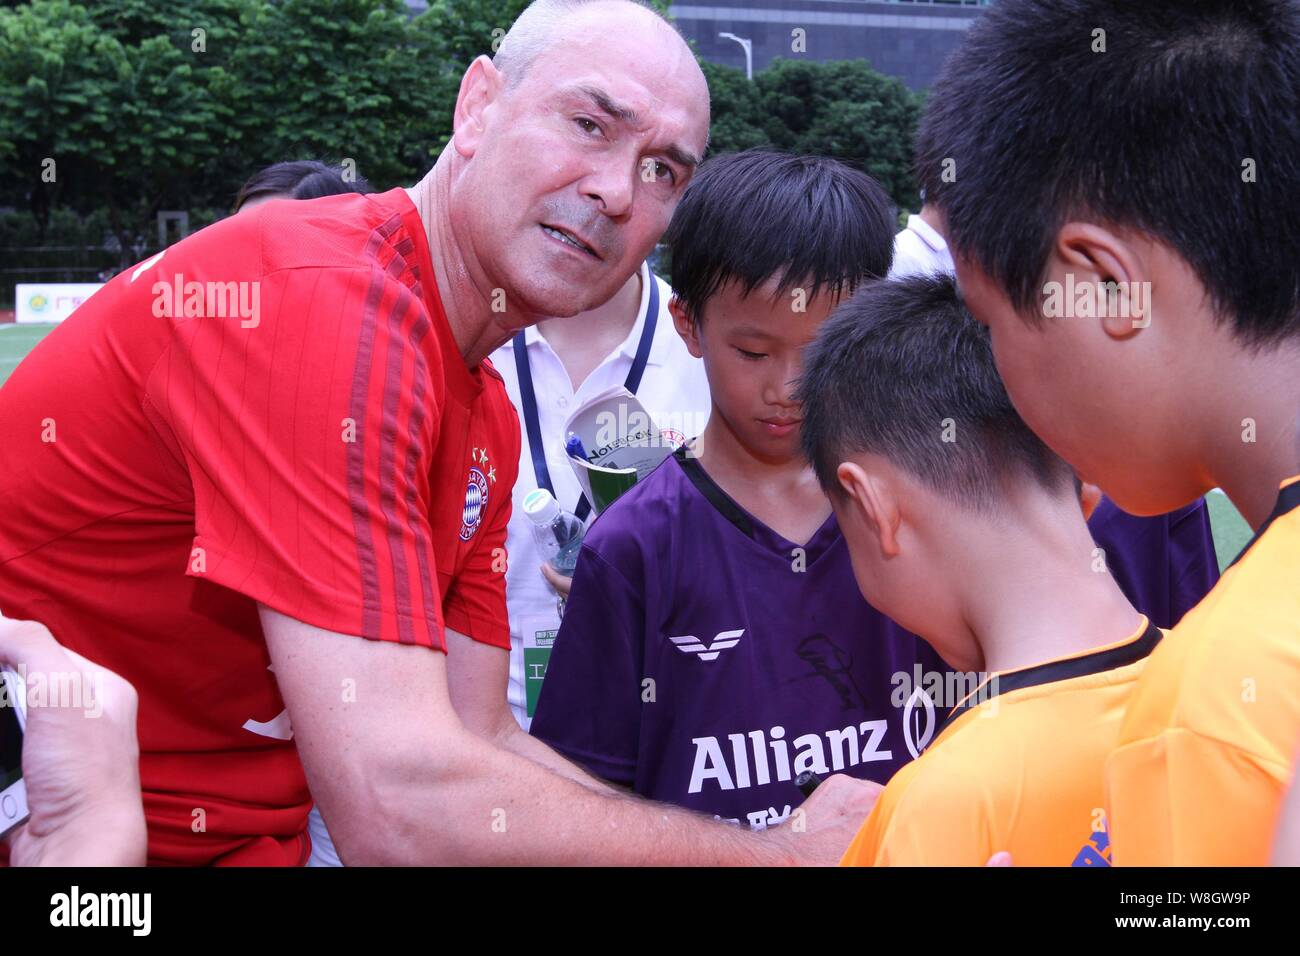 Former German soccer star Raimond Aumann, left, is pictured during a fan meeting event in Guangzhou city, south China's Guangdong province, 23 July 20 Stock Photo